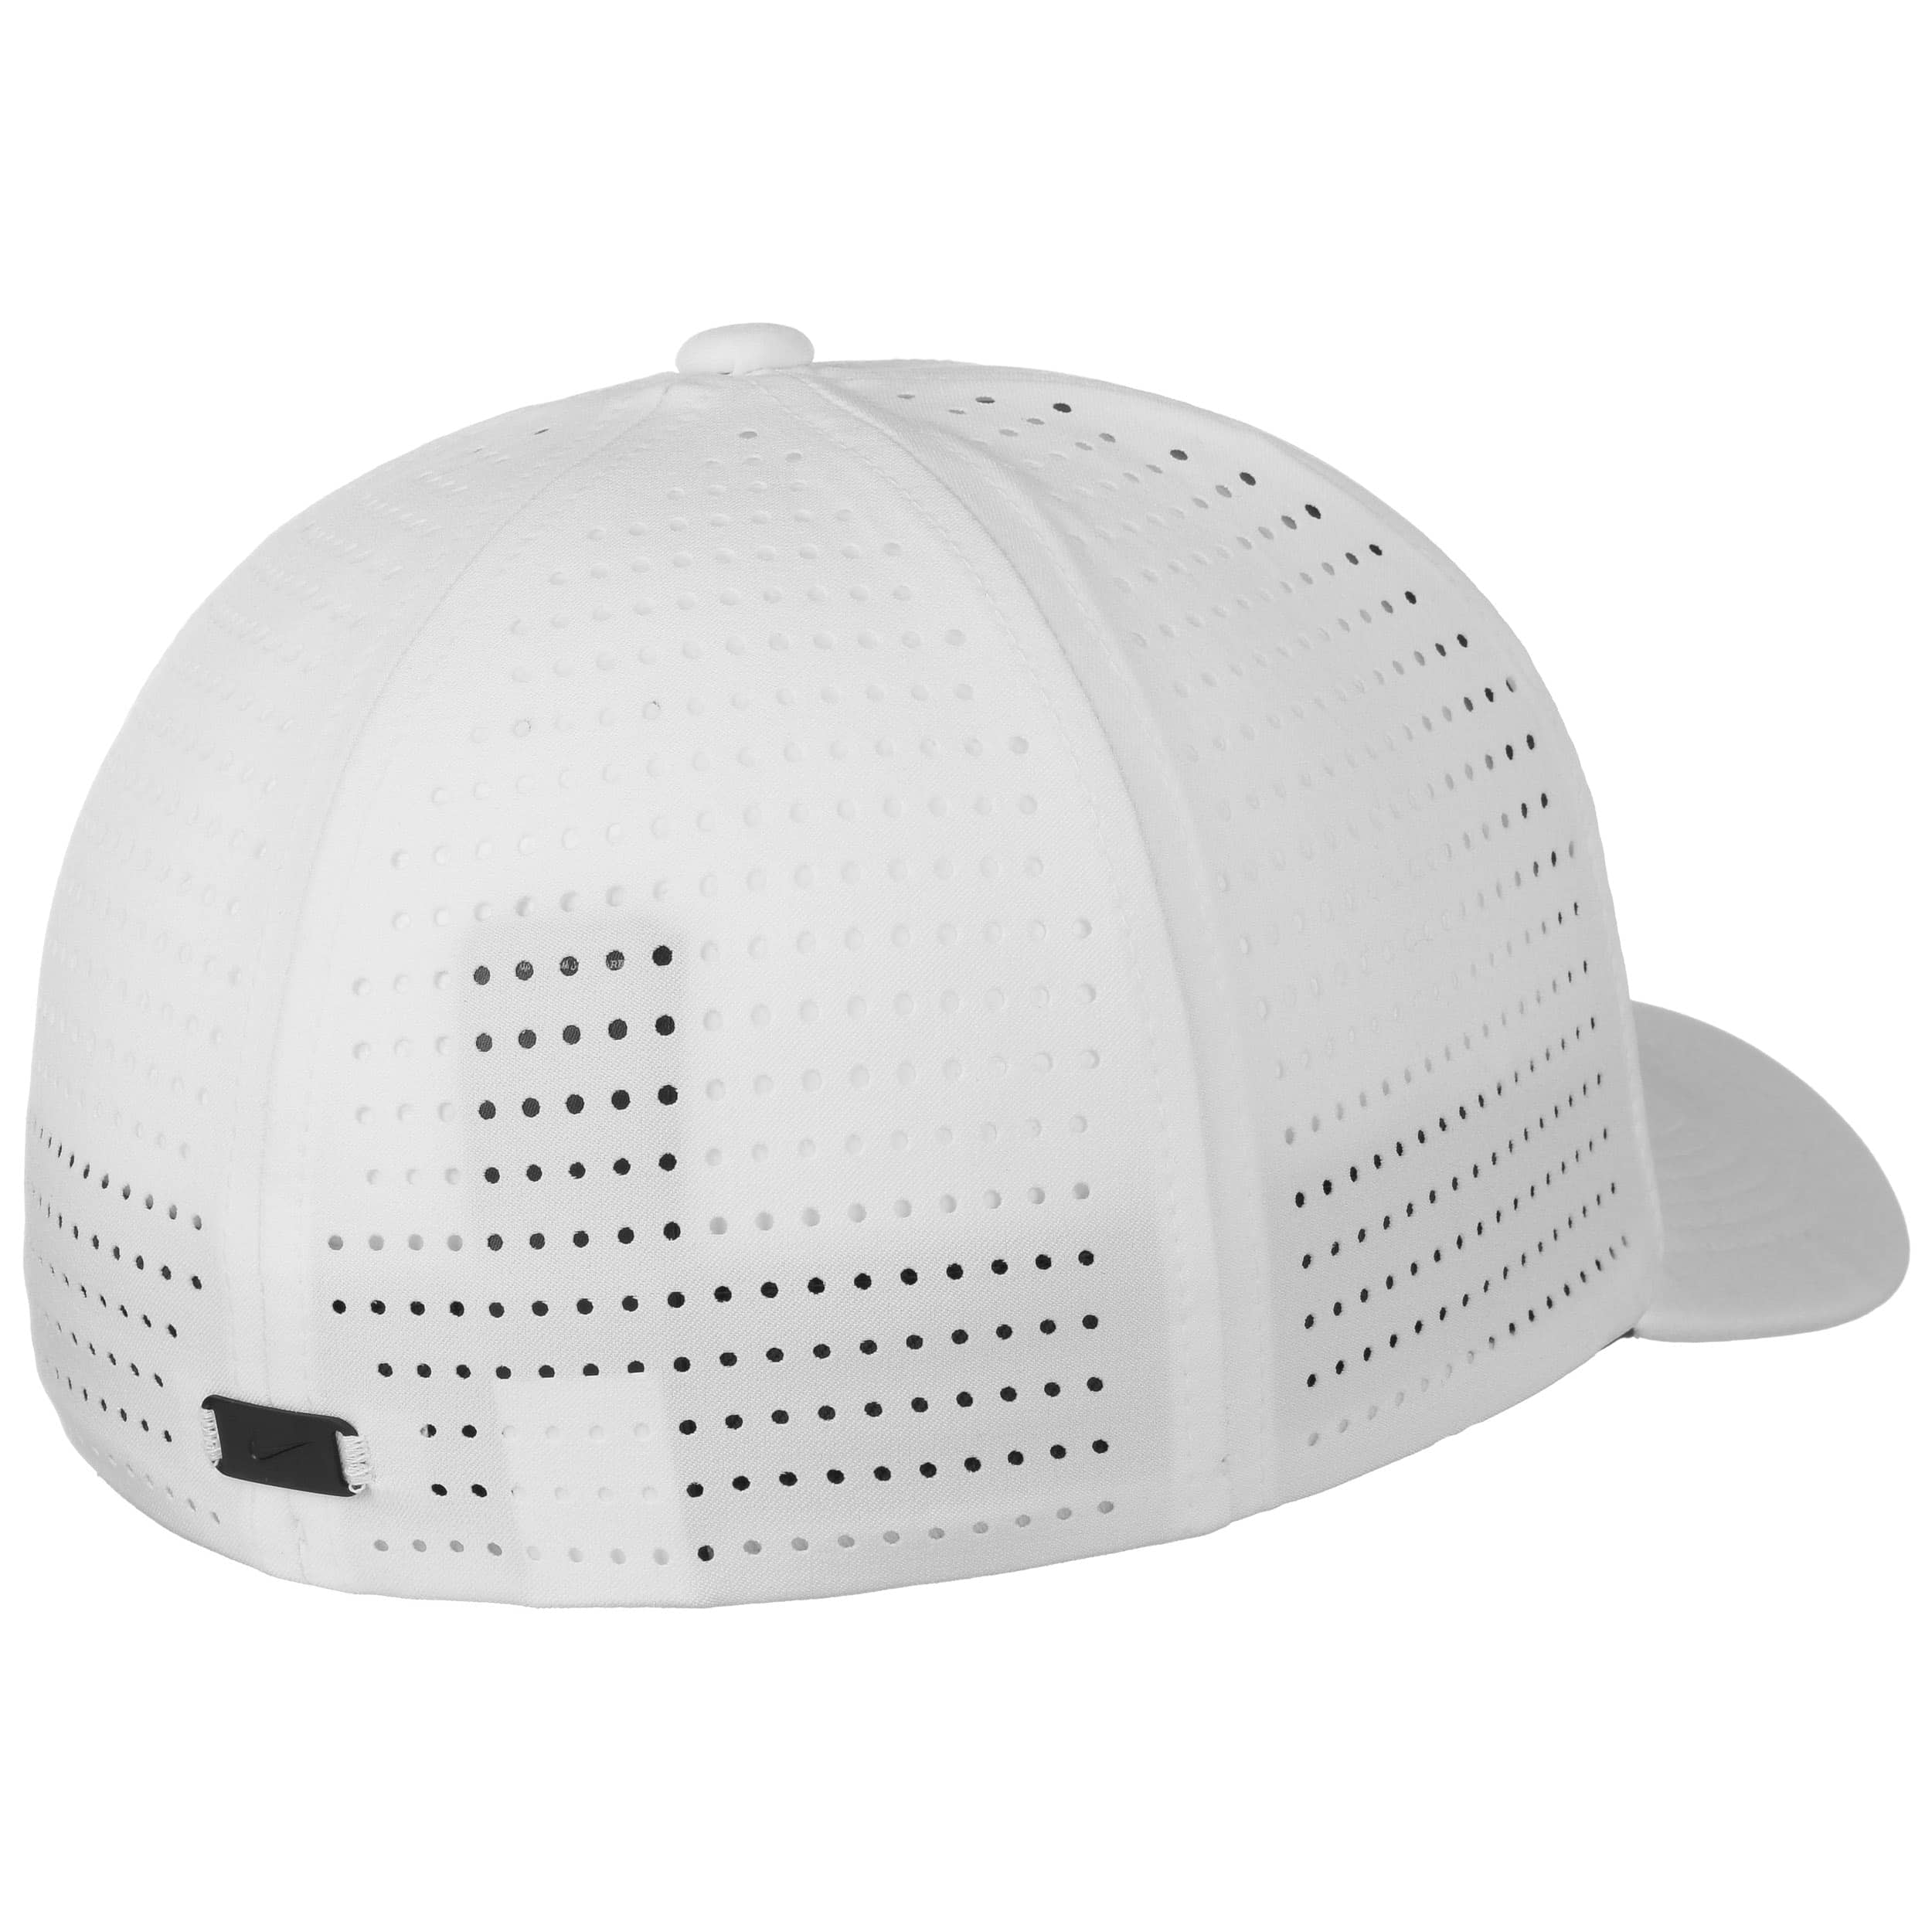 ... 1 · Golf Classic 99 Baseball Cap by Nike - bianco 3 ... 4bcb5a06a56b